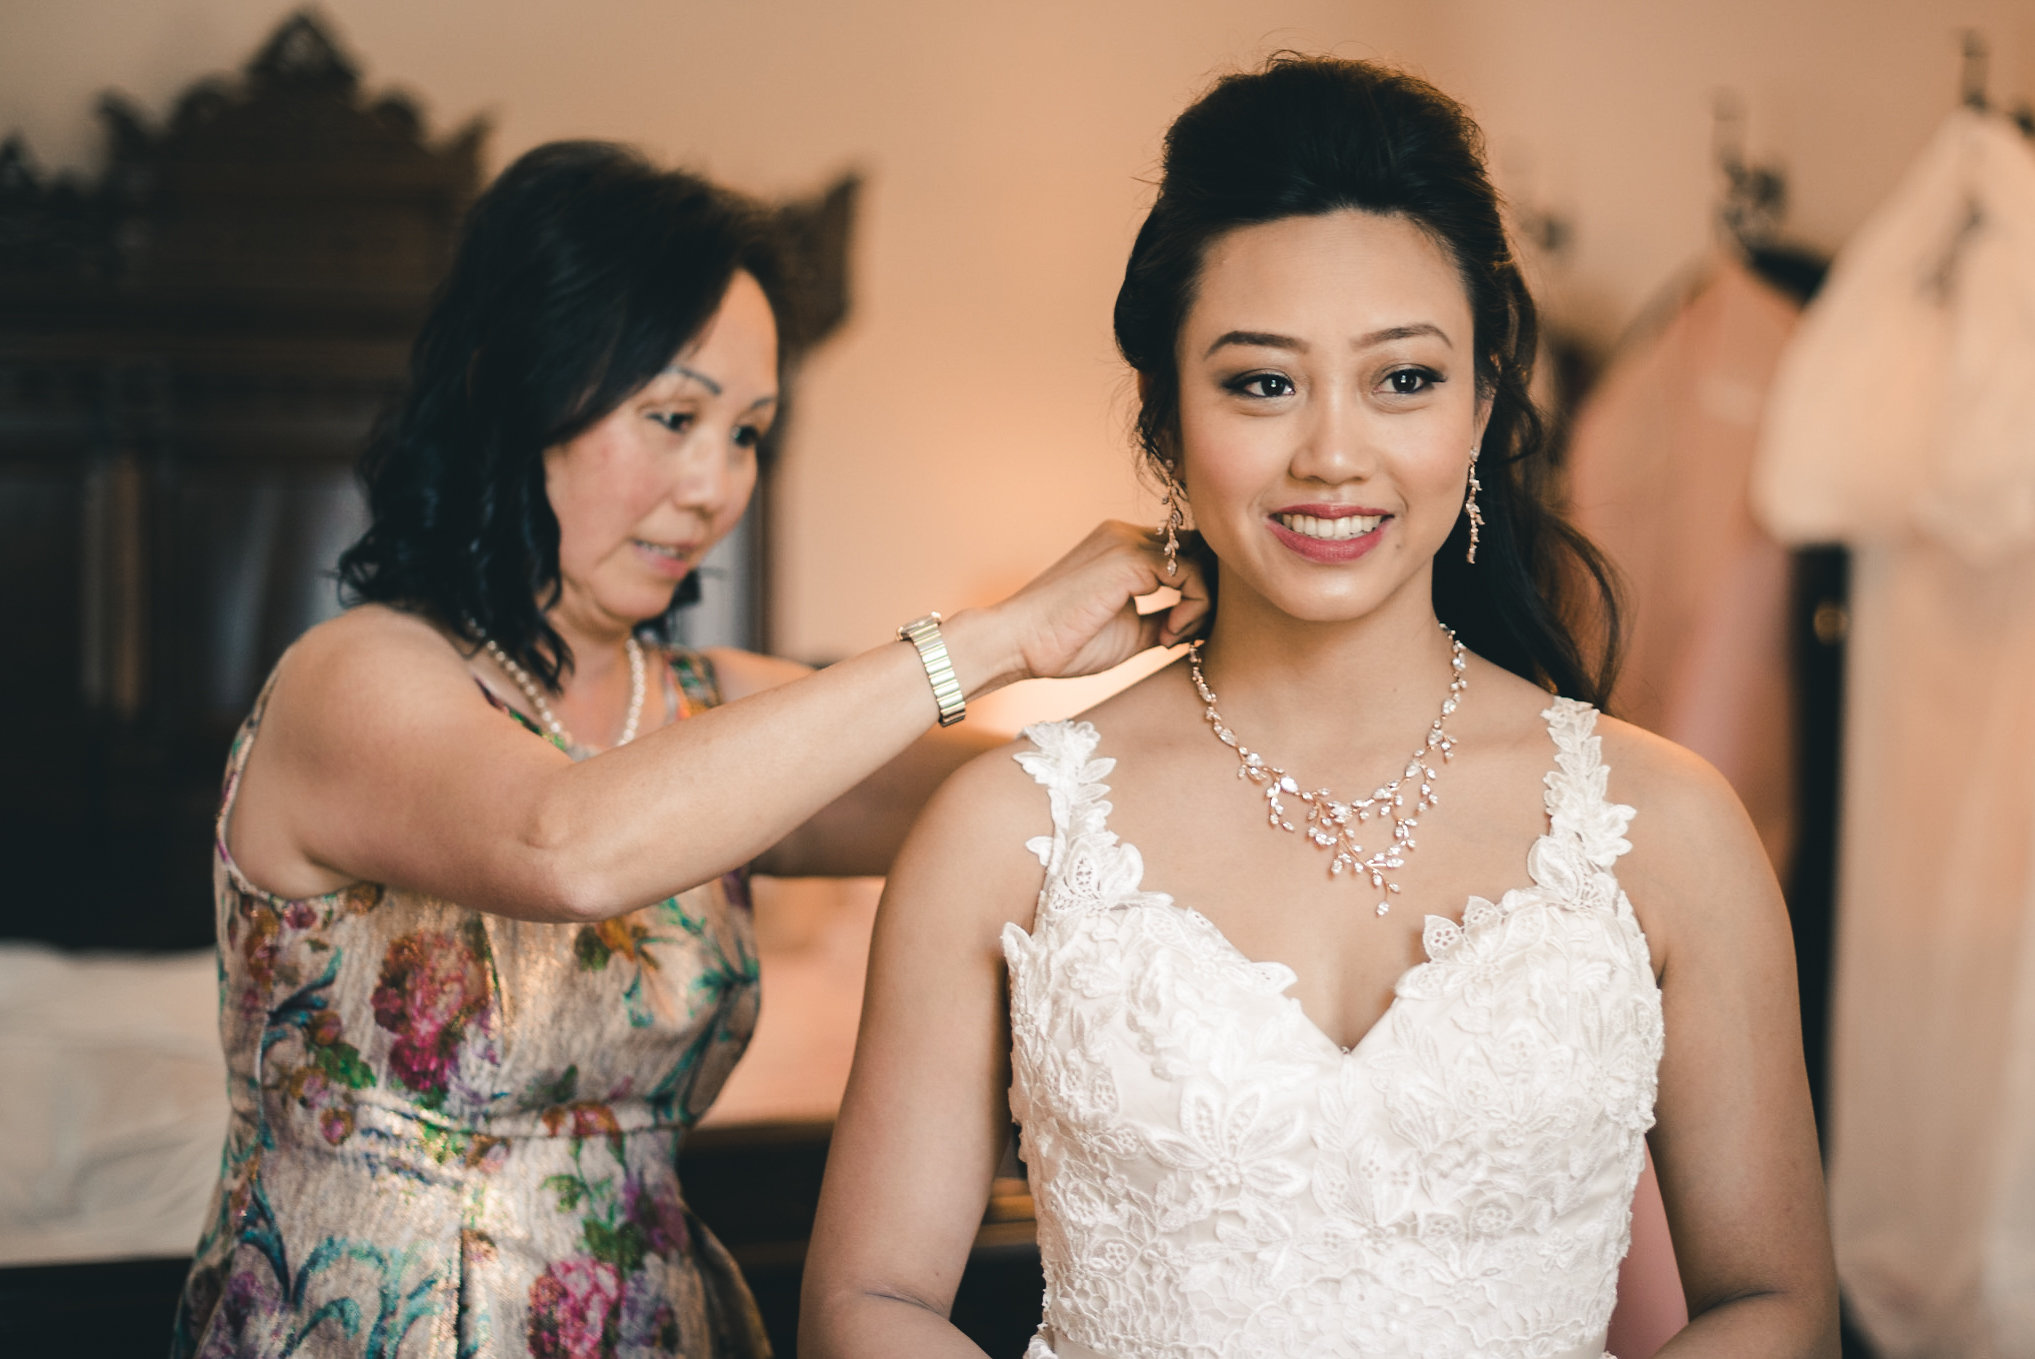 Mother putting necklace on bride